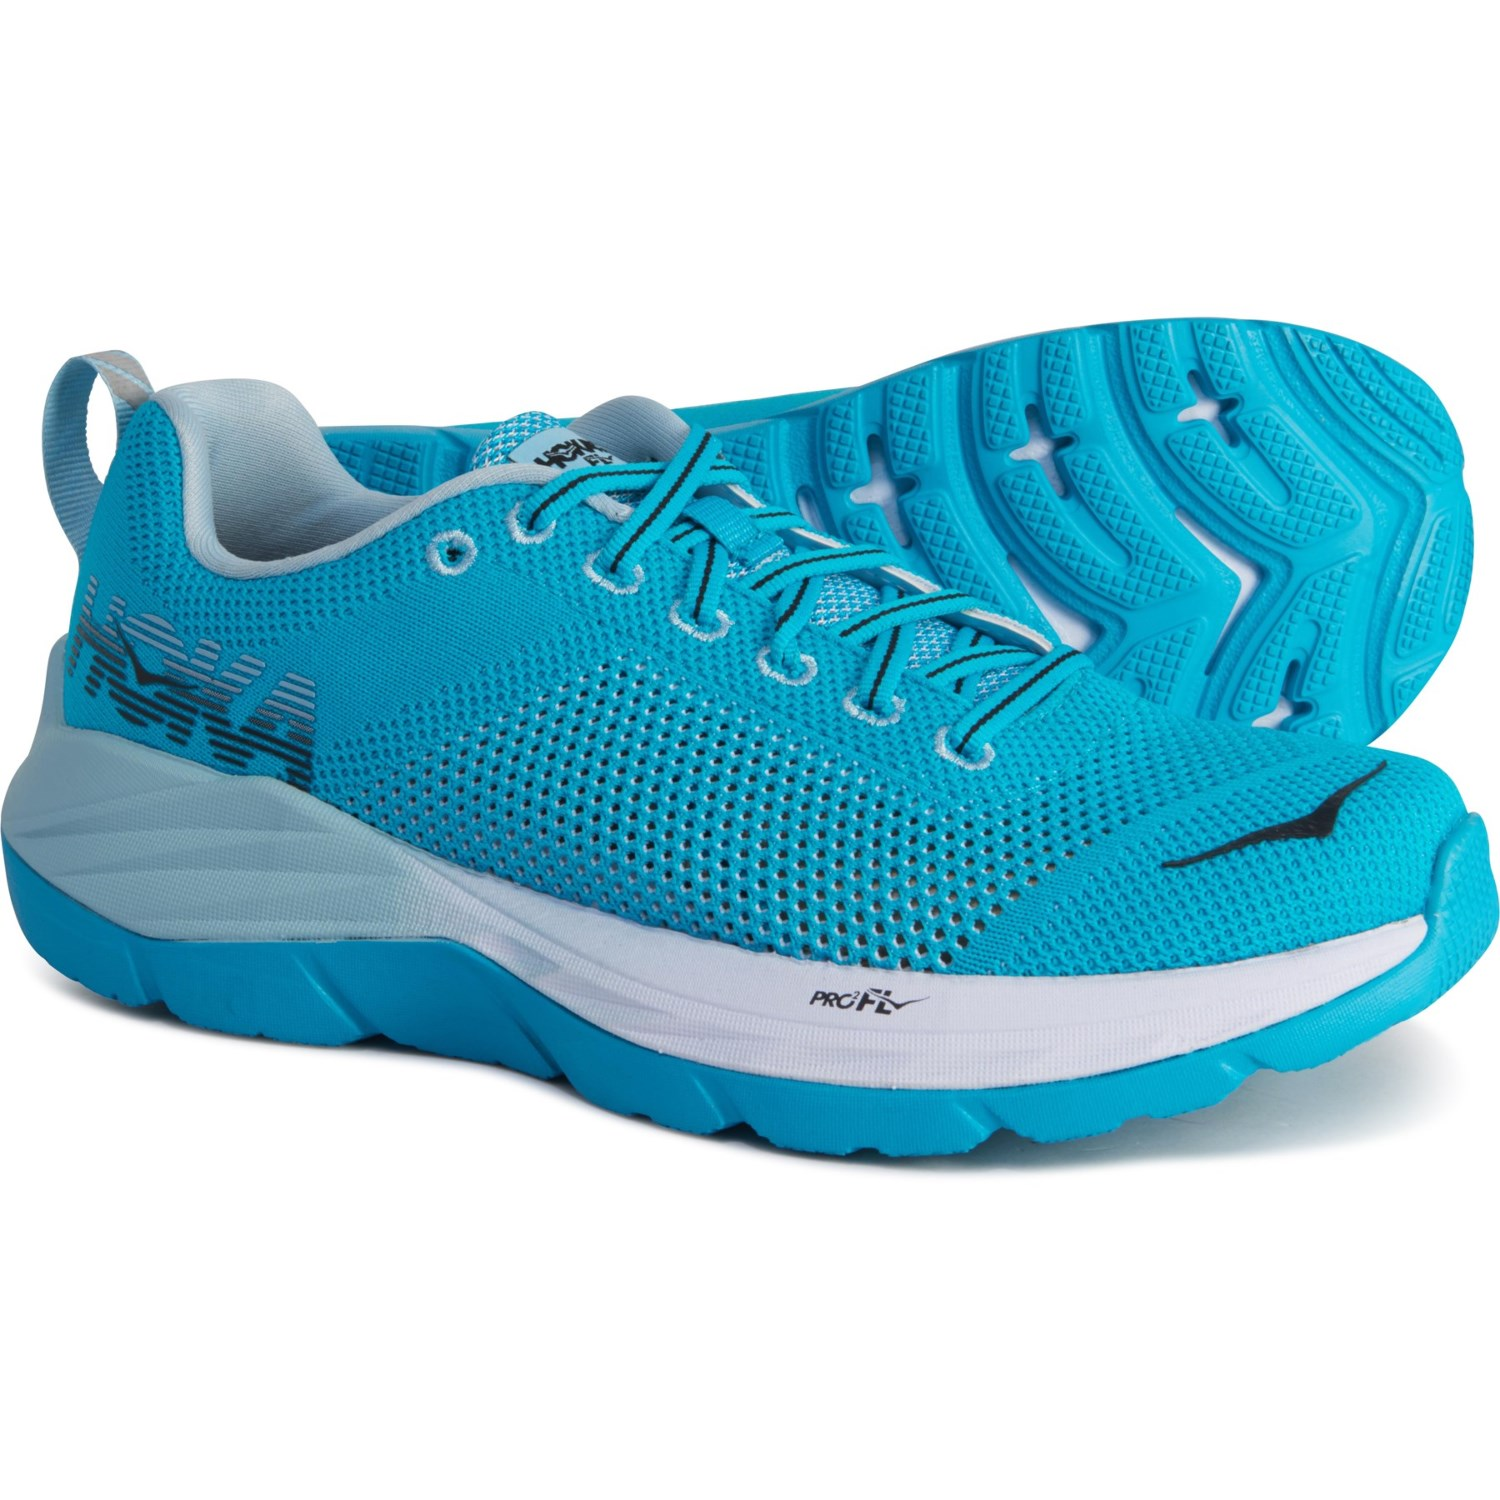 super popular 03730 a5c80 Hoka One One Mach Running Shoes (For Women) - Save 30%